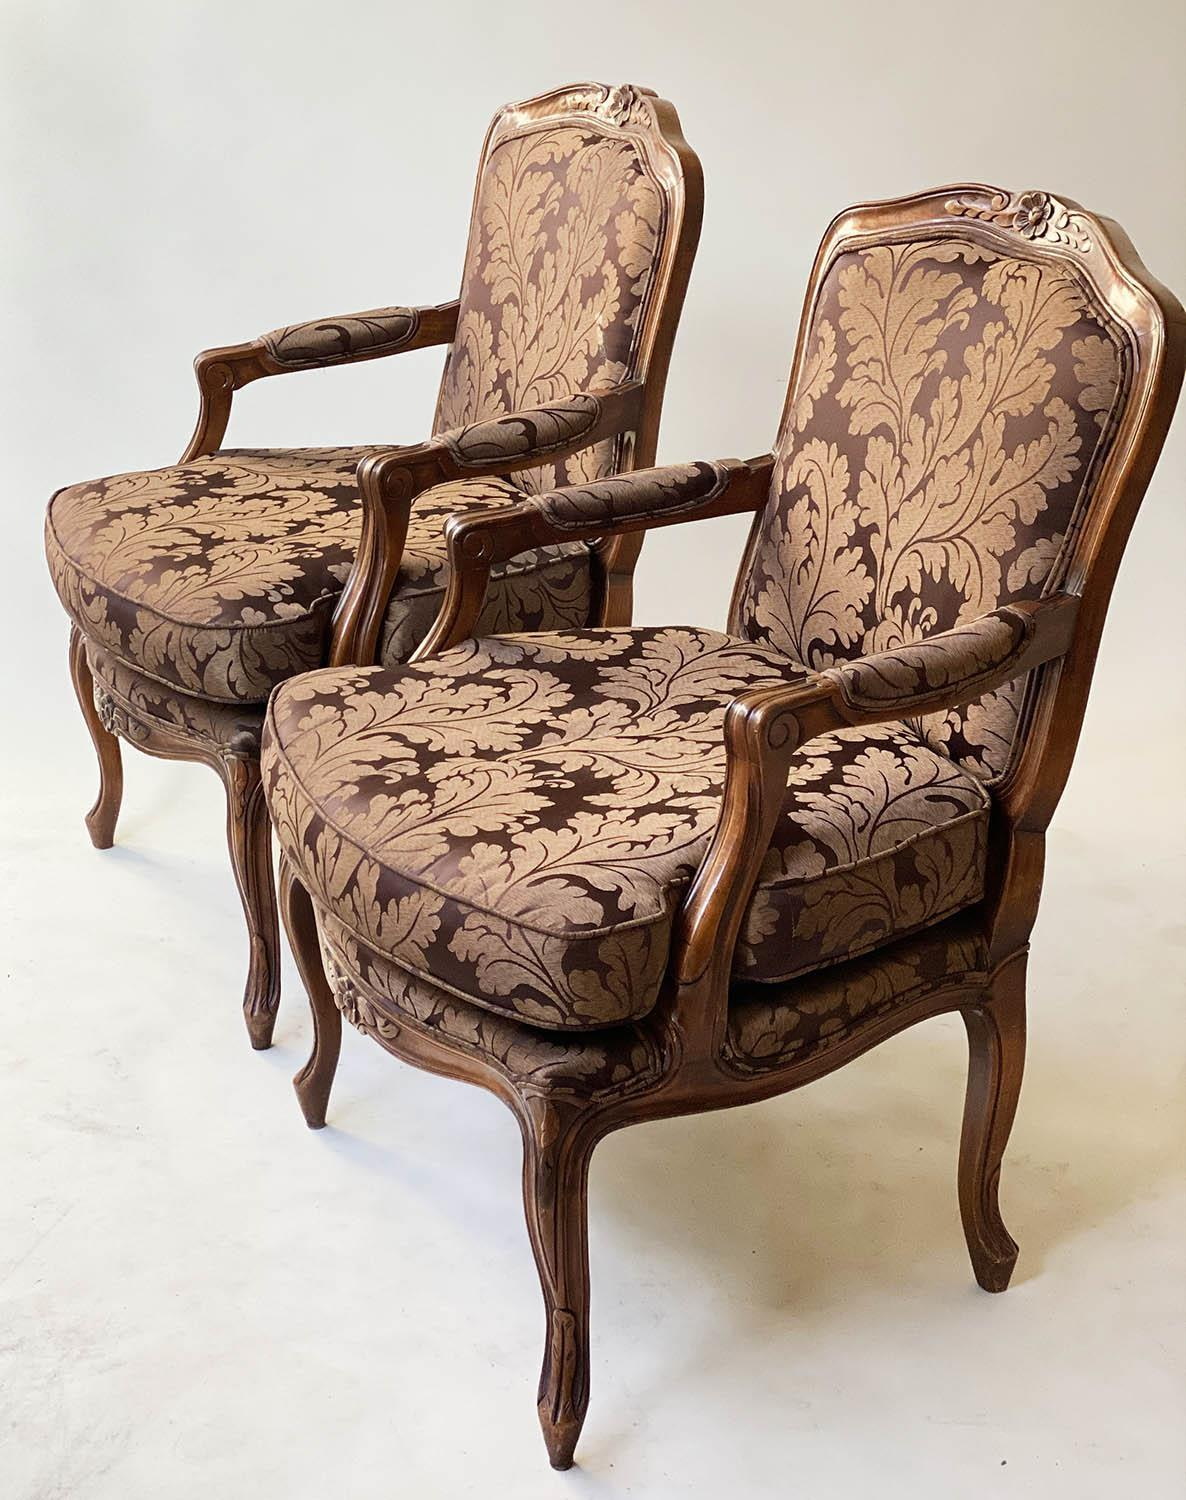 FAUTEUILS, a pair, French Louis XV style, stained walnut, with two tone brown leaf silk - Image 9 of 9